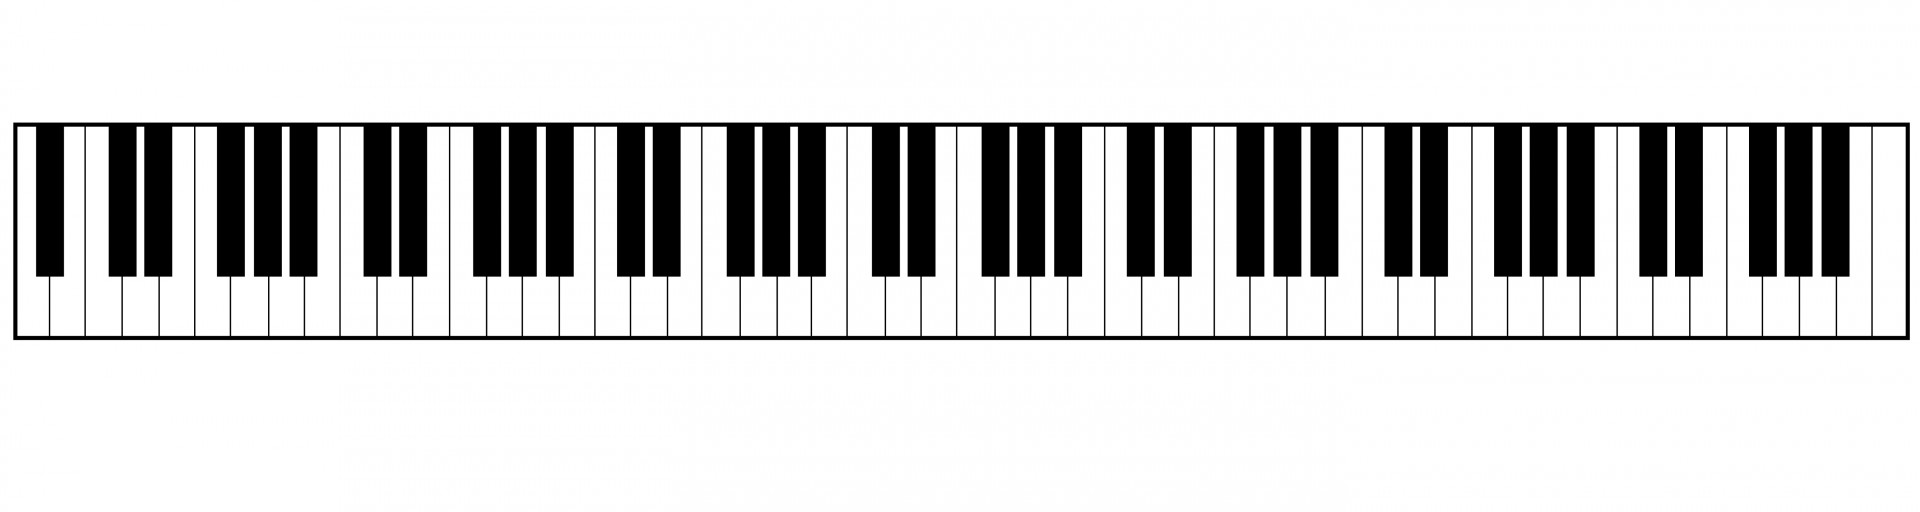 Clipart piano key cover image free library Piano Keys Clip Art & Piano Keys Clip Art Clip Art Images ... image free library